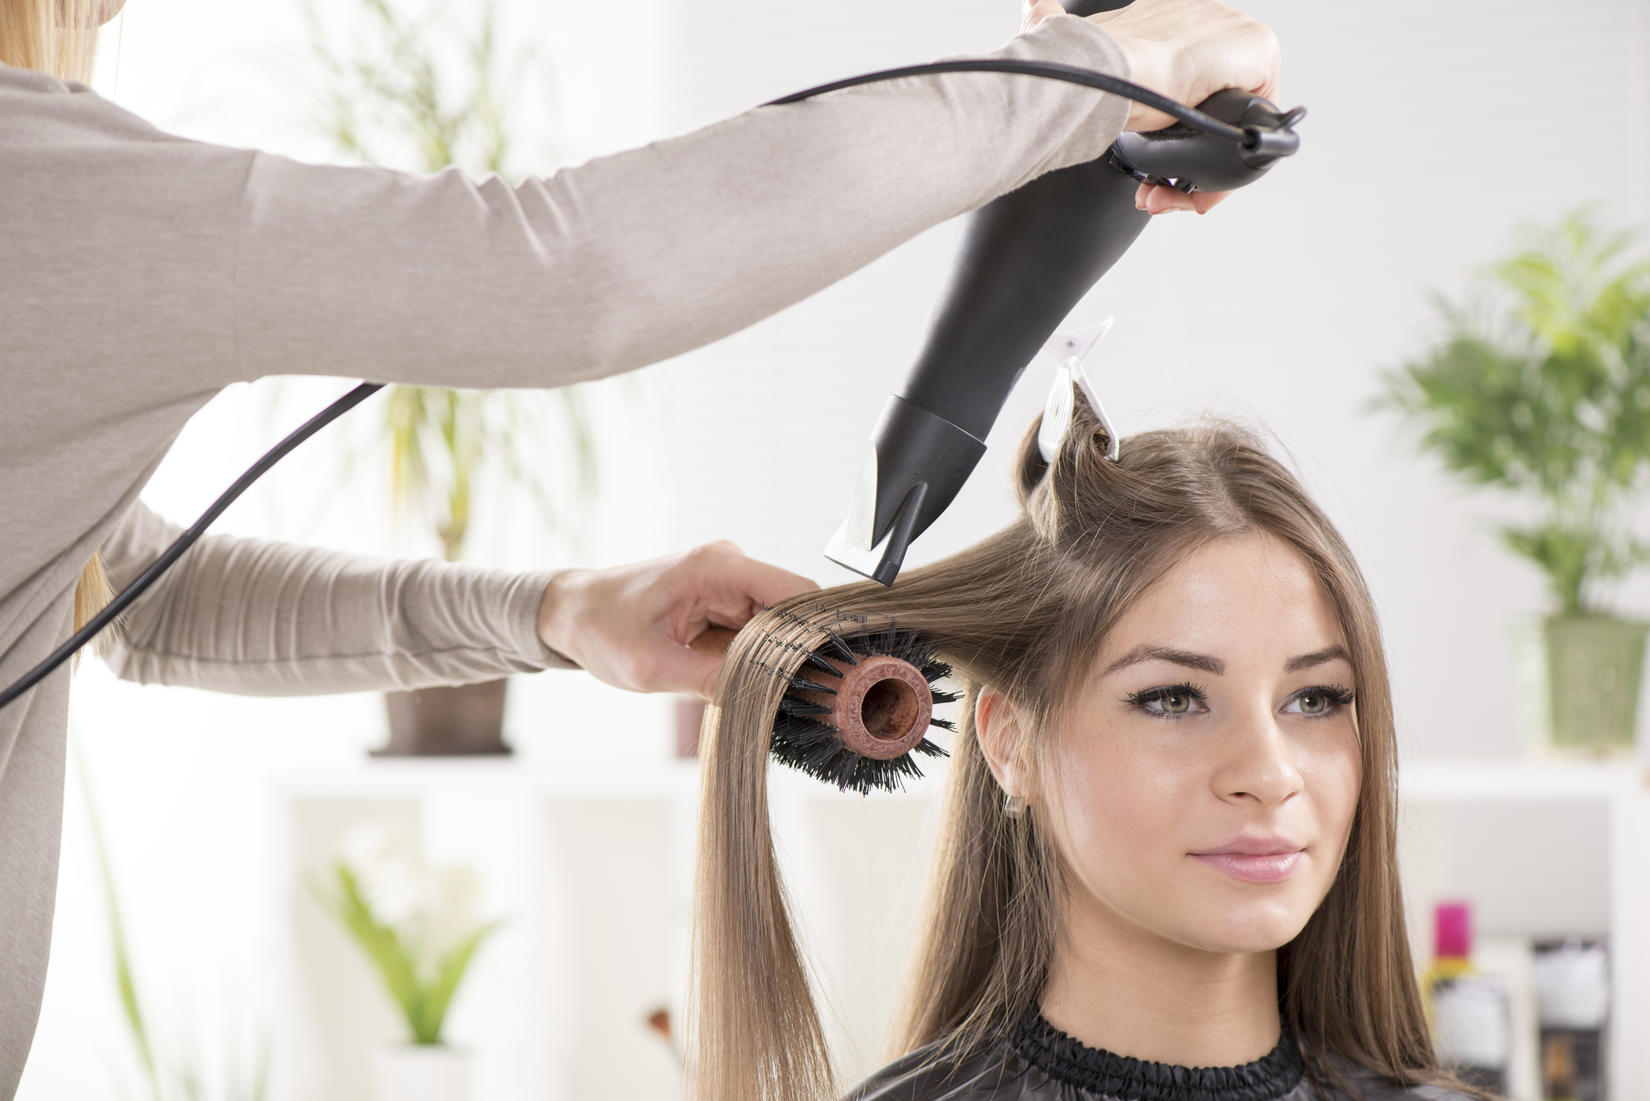 Haircut coupons toledo ohio - Hair Salons Coupons Deals Near Toledo Oh